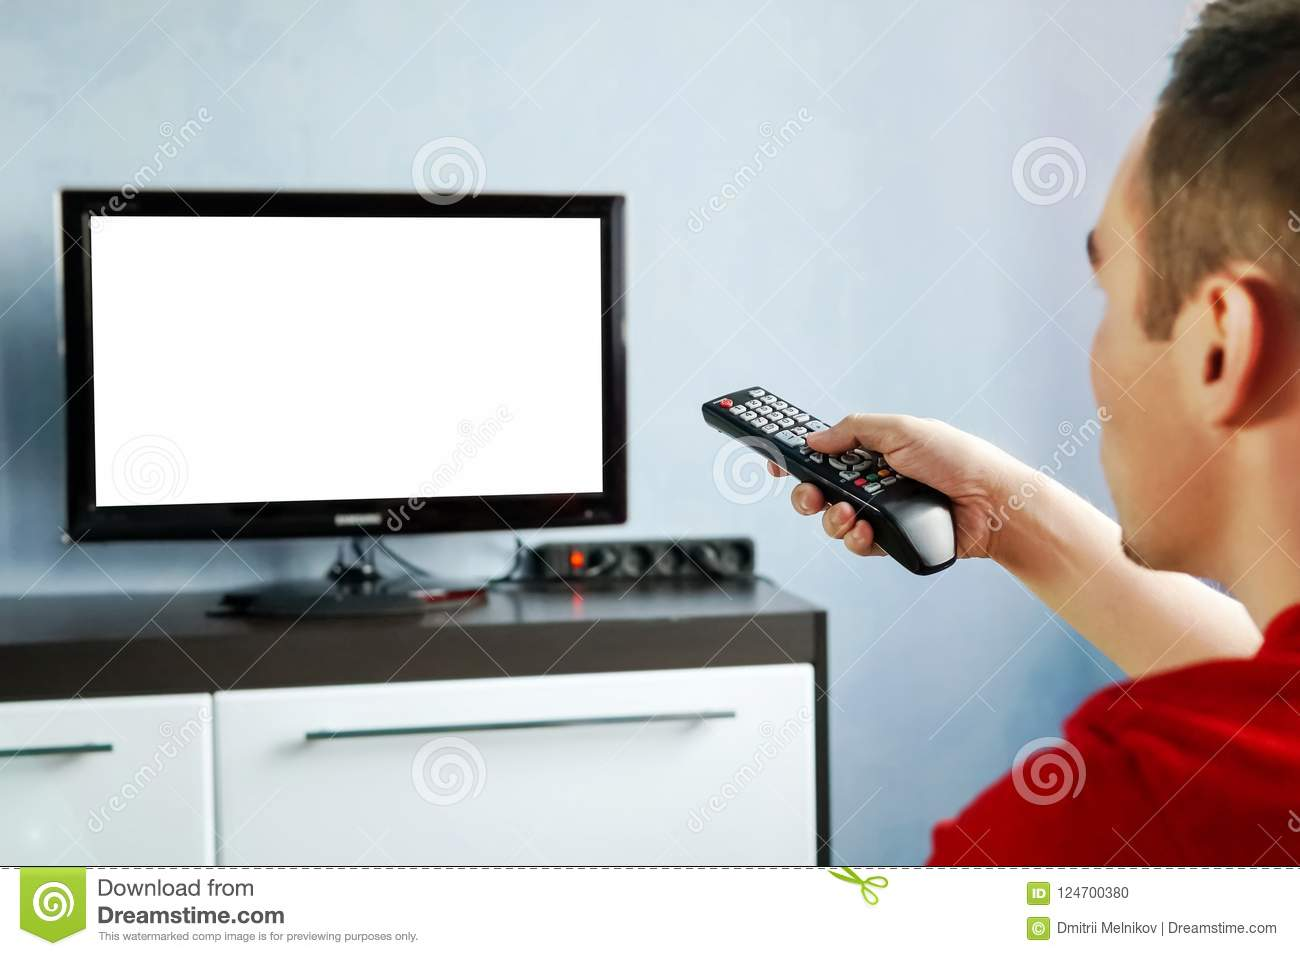 TV Remote Control In Male Hand In Front Of Widescreen TV Set With